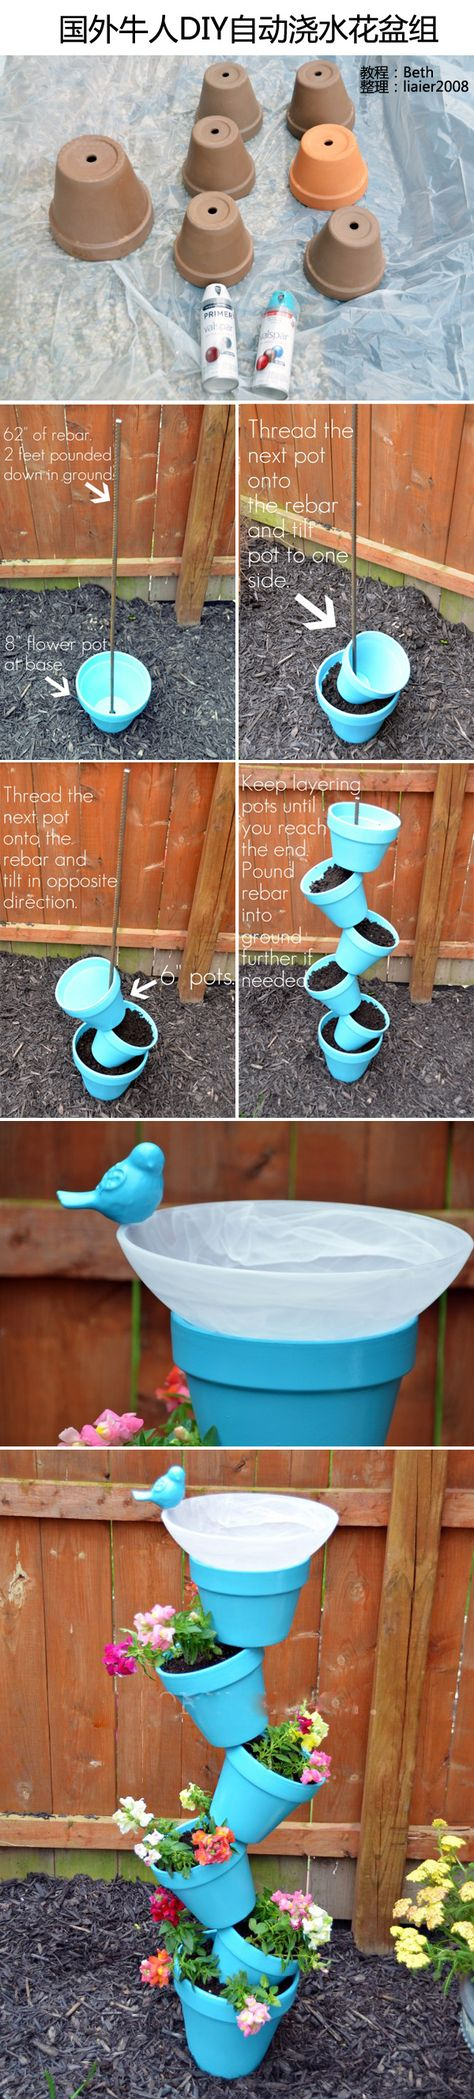 staggered flower pots